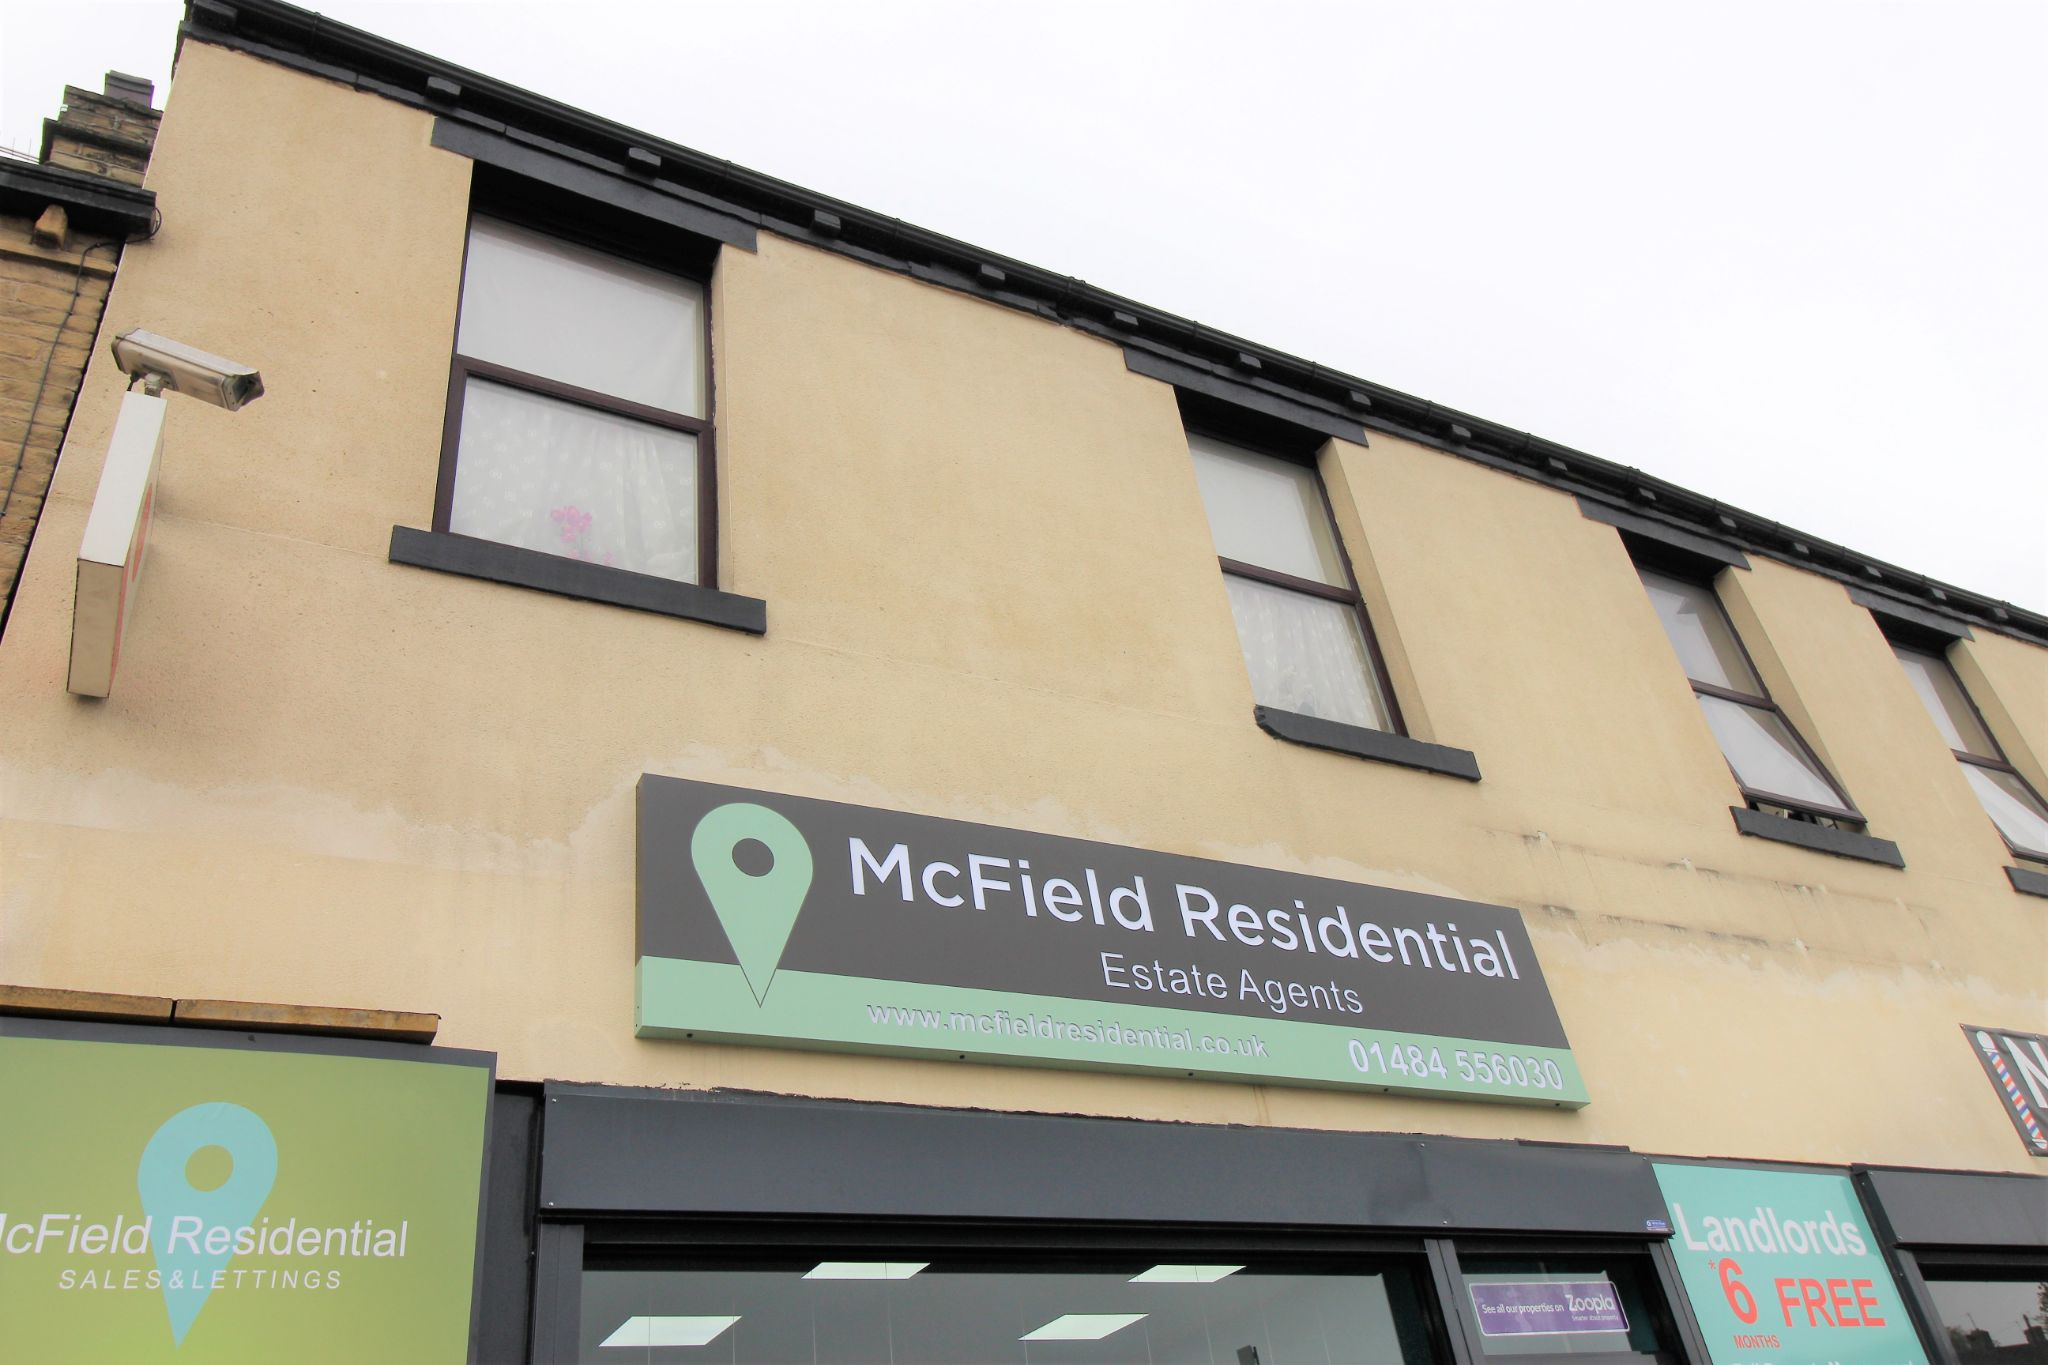 1 bedroom bedsit flat/apartment Let in Brighouse - The flat above McField Residential shop